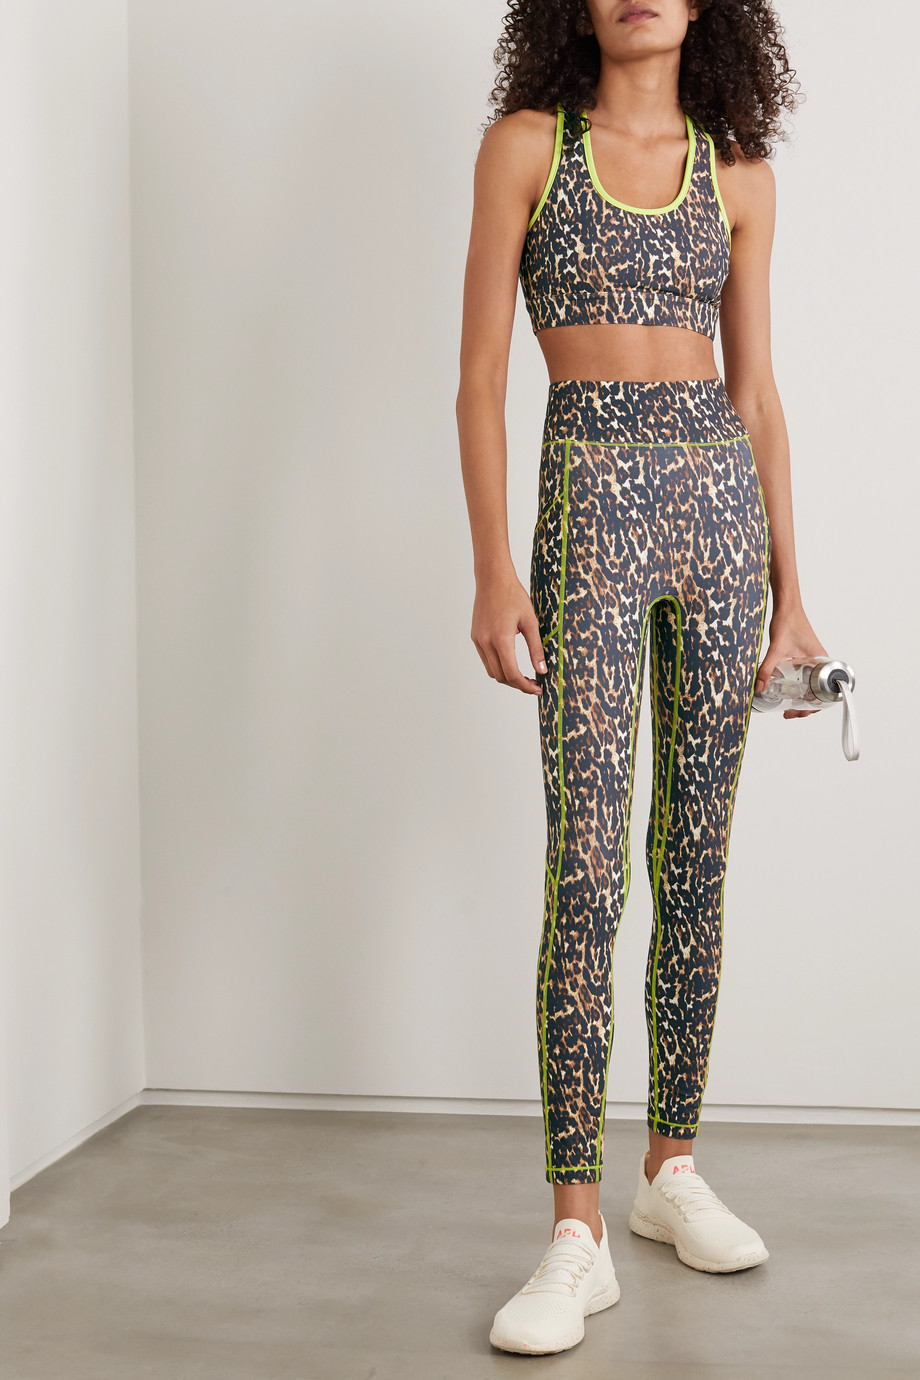 All Access Centre Stage leopard-print stretch leggings